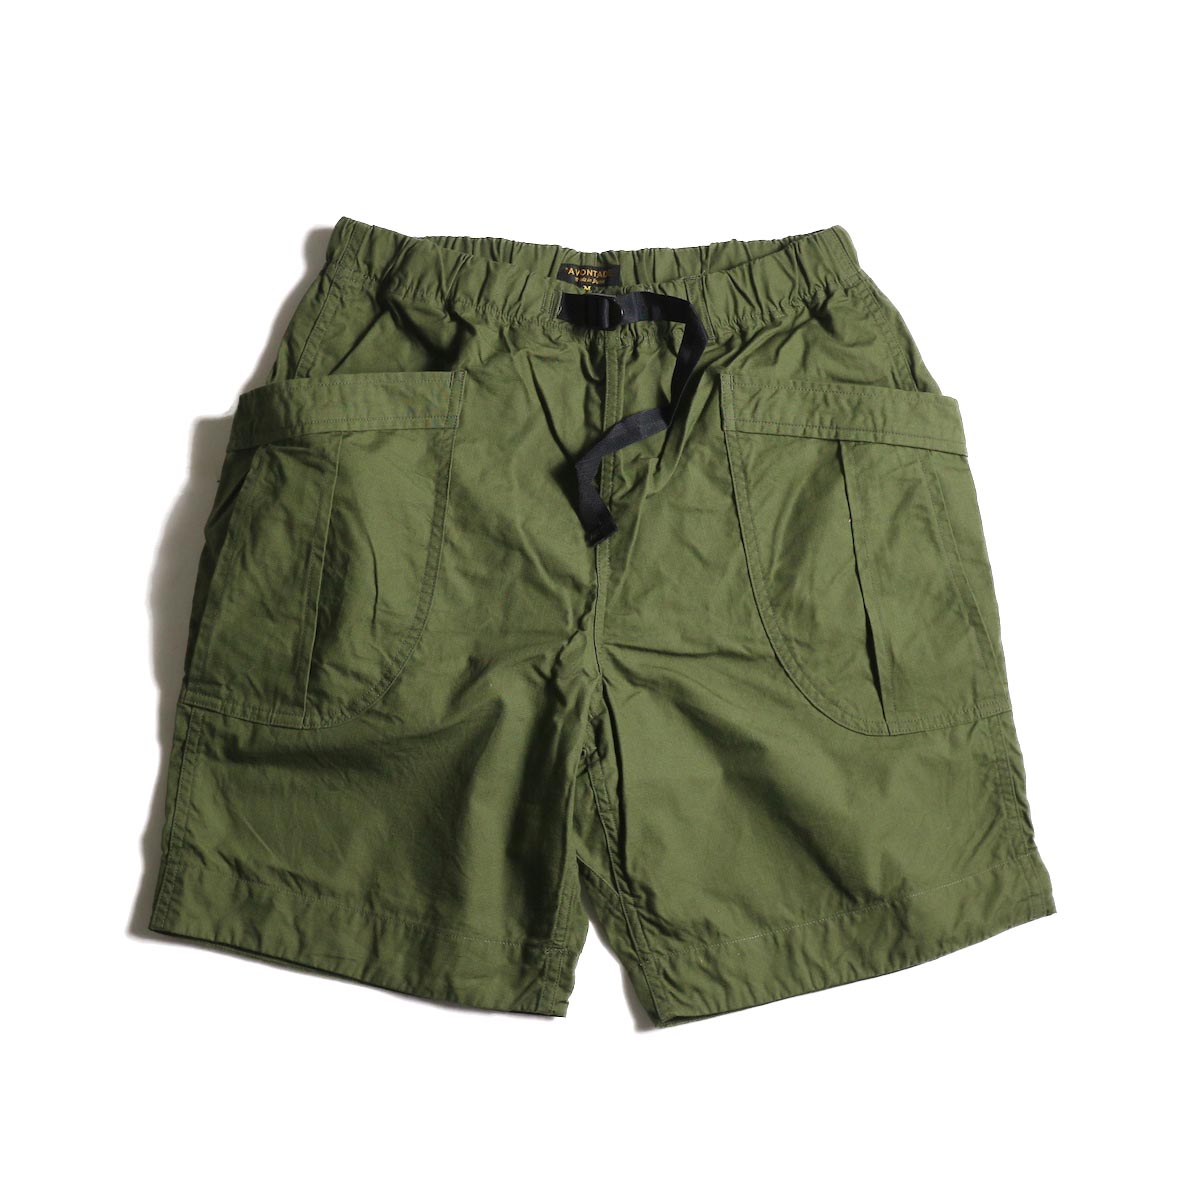 A VONTADE / Fatigue Shorts (Olive)